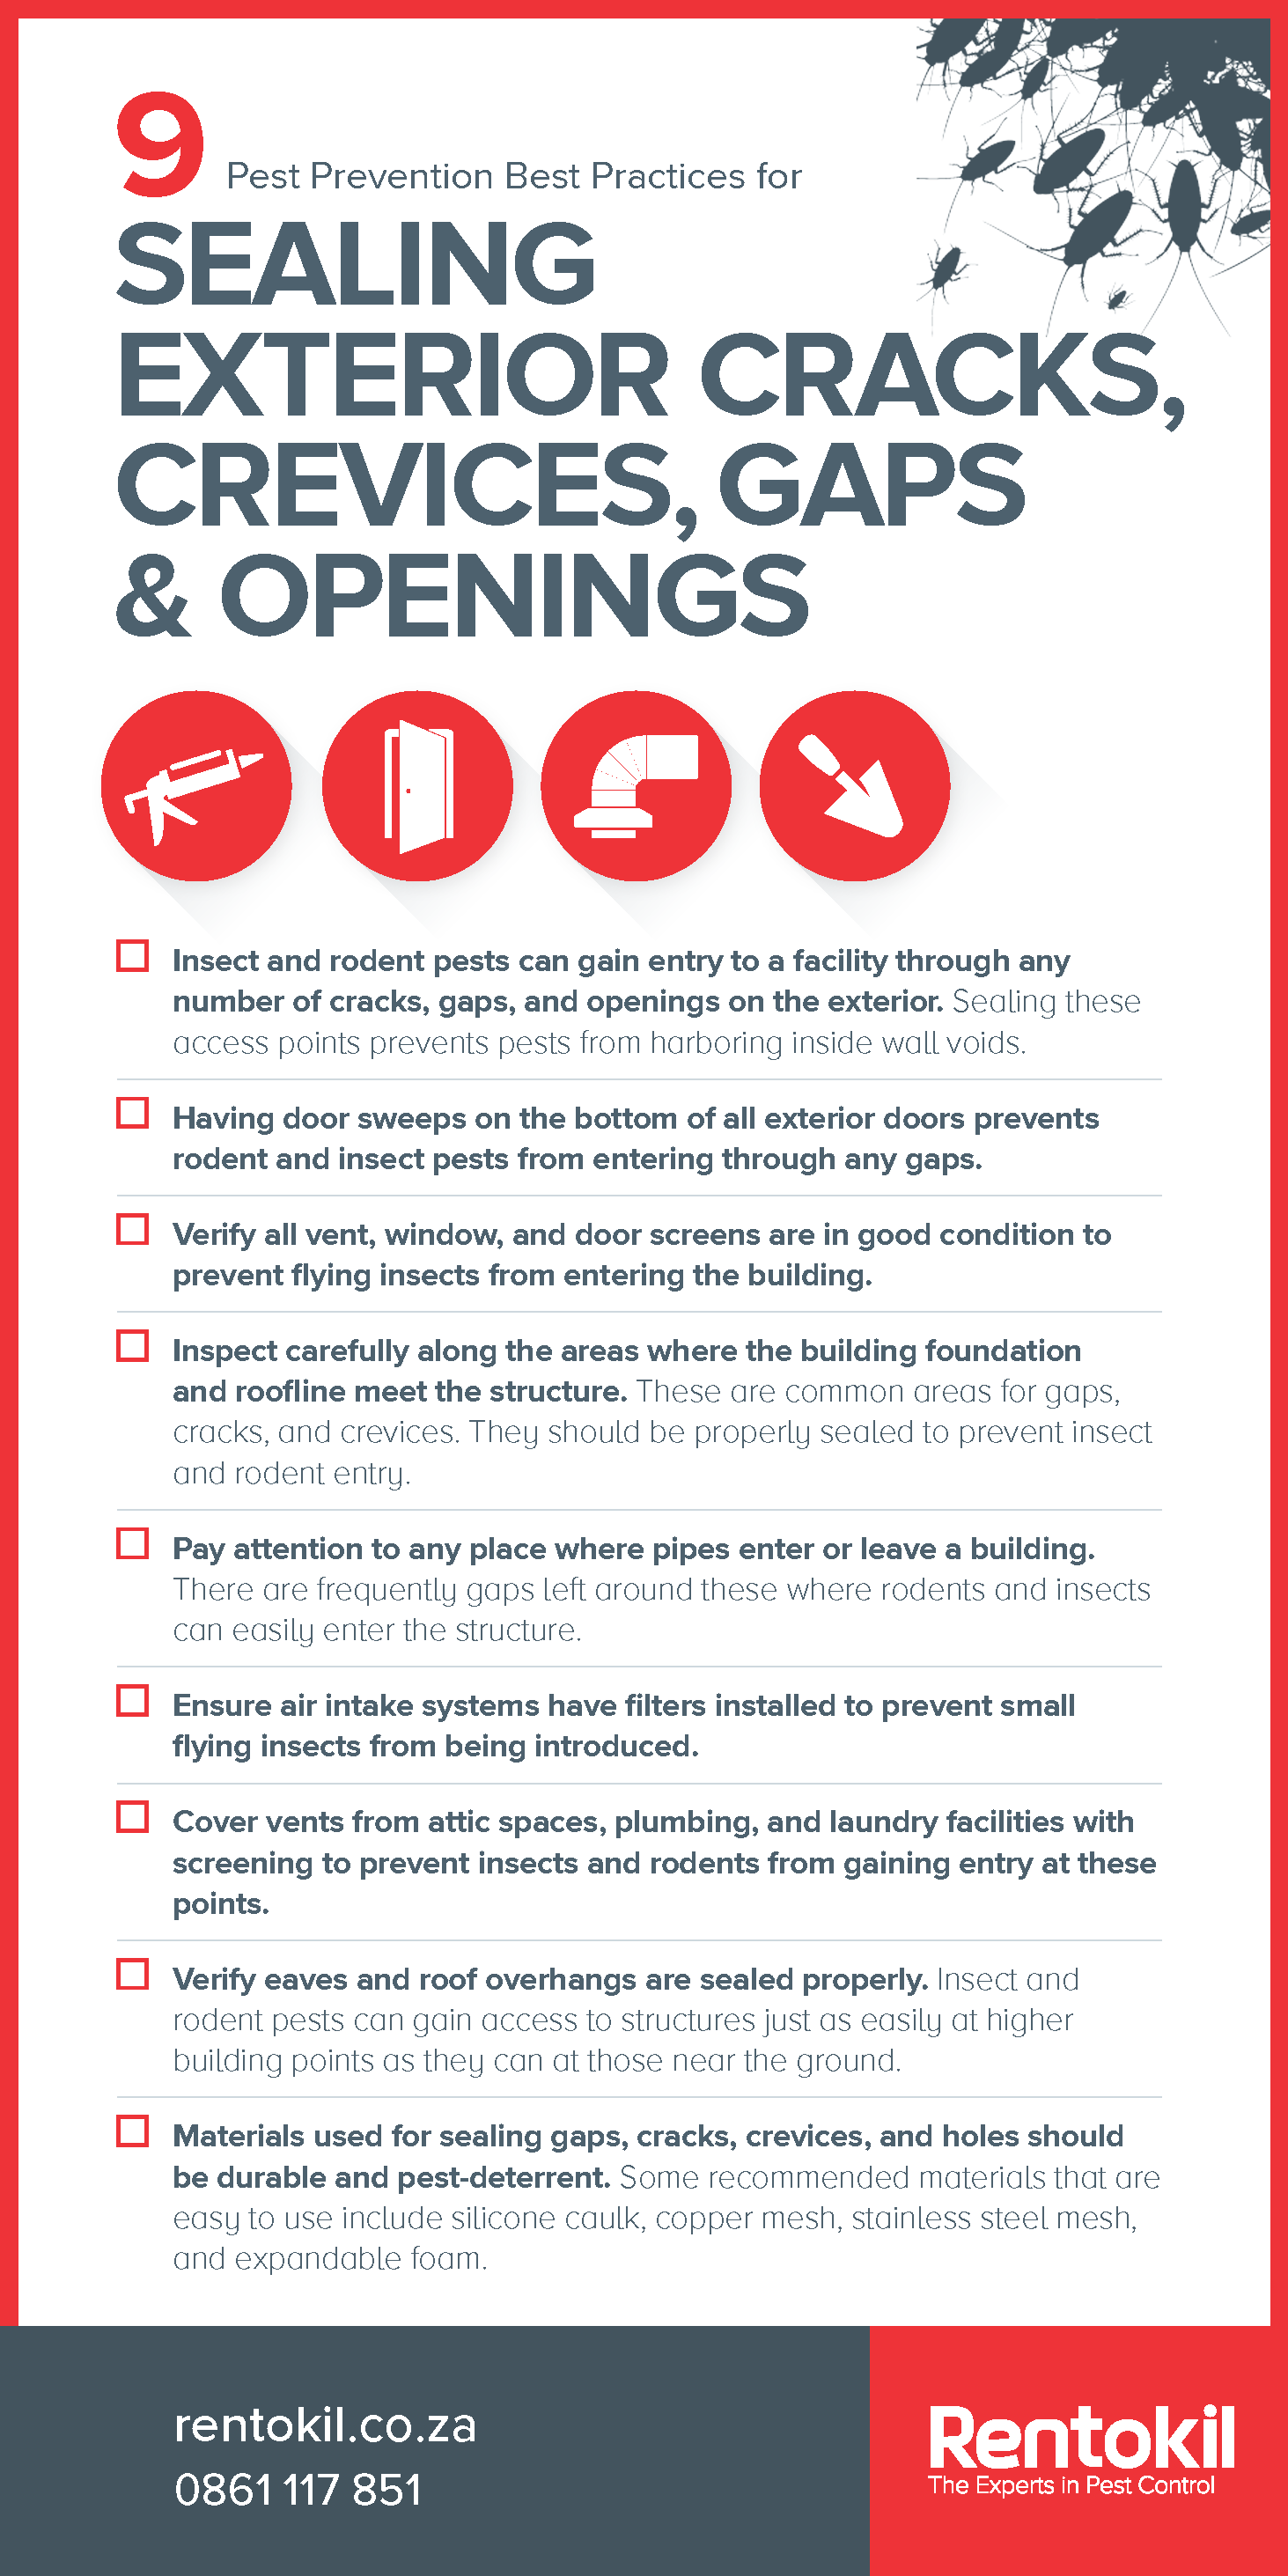 9 of the most important pest prevention best practice tips related to proofing in your building